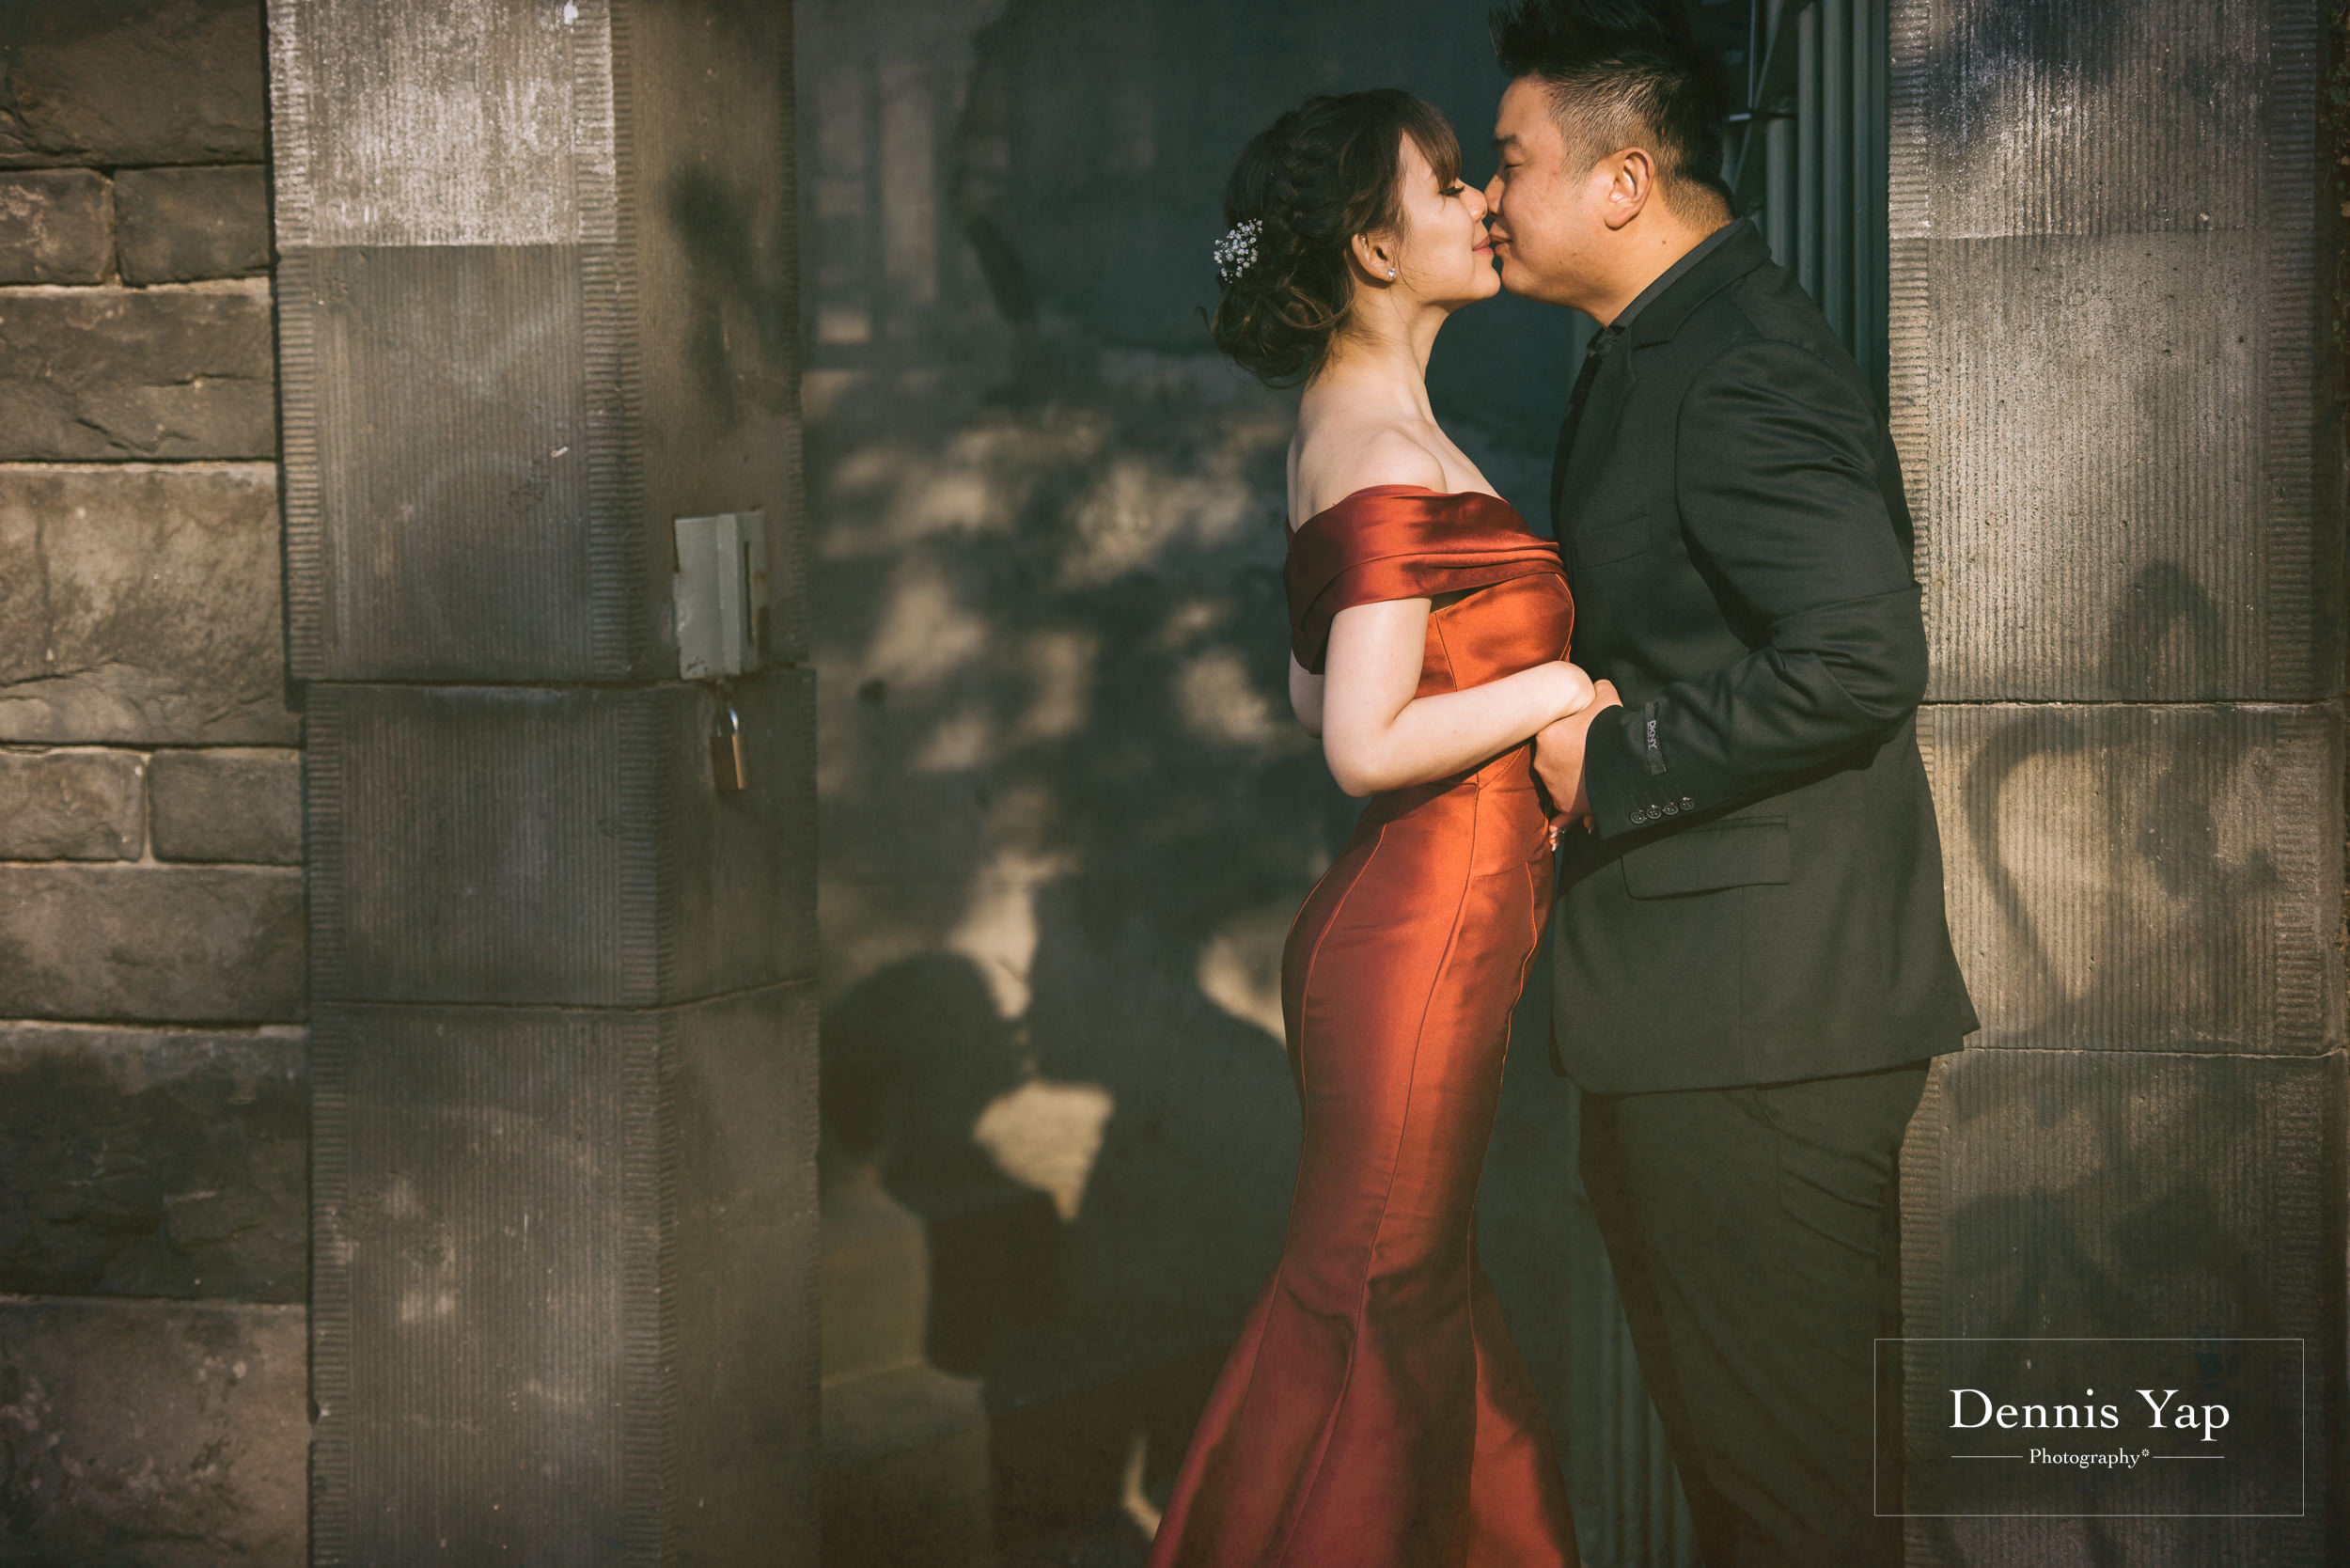 johnson joanne prewedding melbourne dennis yap photography fine art portrait paris dennis yap photography-10.jpg